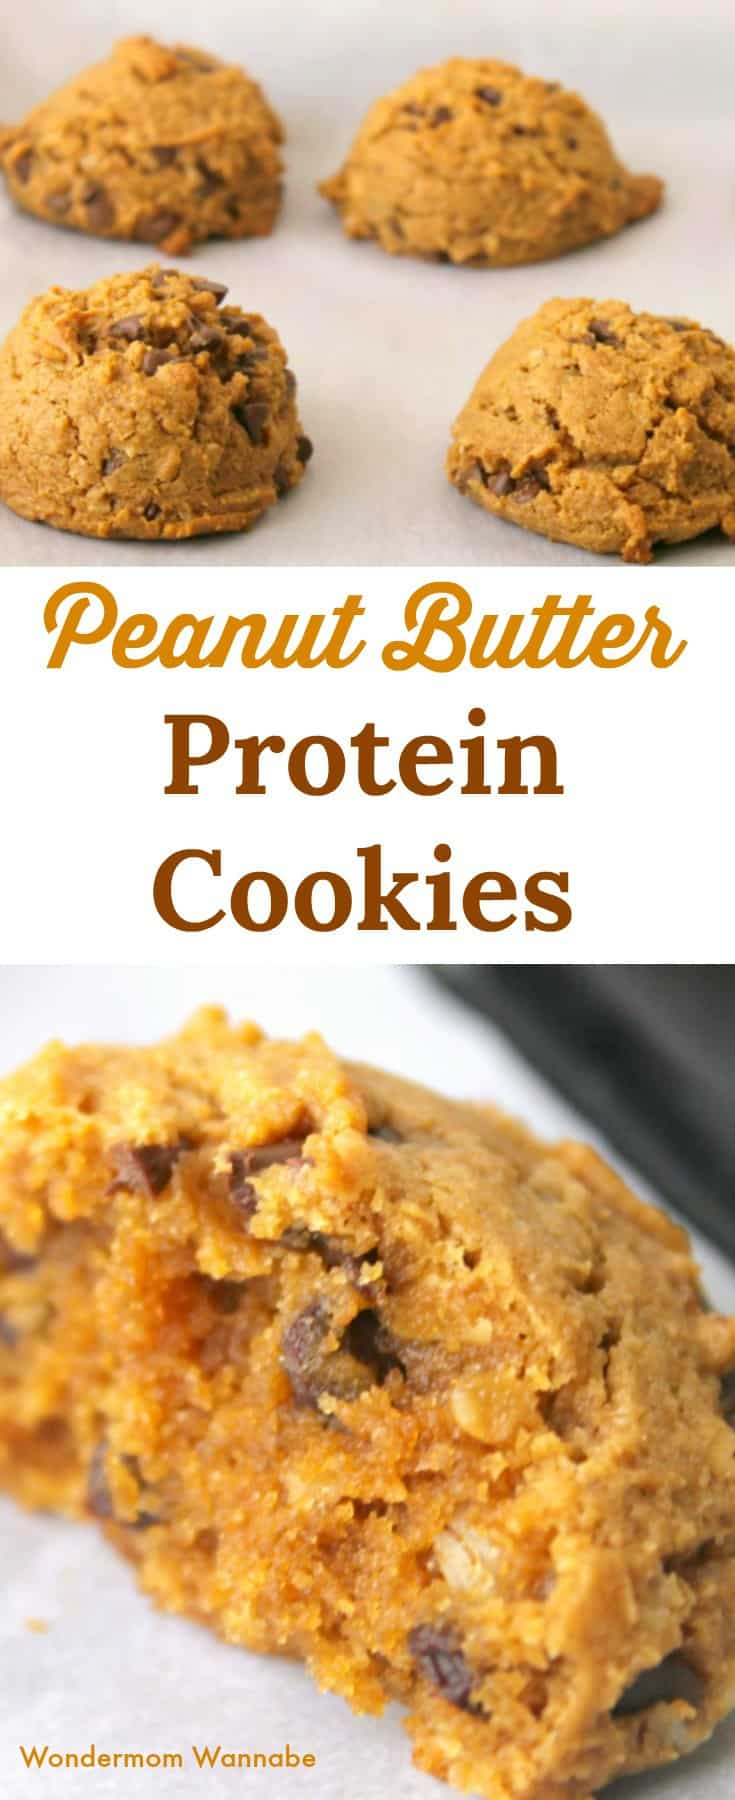 These No-Flour Peanut Butter Protein Cookies are healthy and delicious! Loaded with protein and fiber, they're the perfect guilt-free dessert. #protein #cookies #peanutbuttercookies #guiltfreedessert via @wondermomwannab